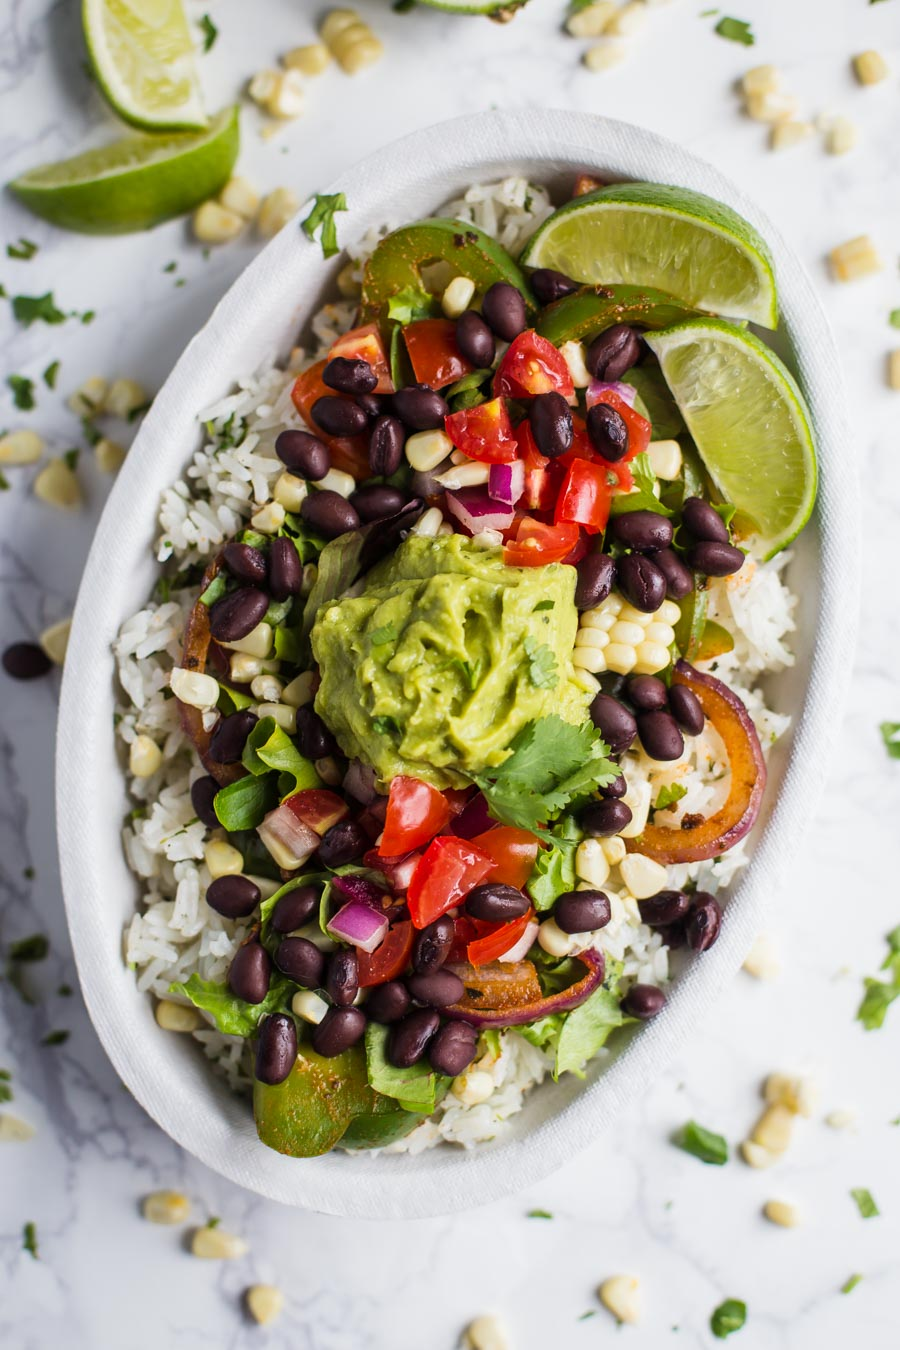 Chipotle Inspired Vegan Burrito Bowl- this homemade burrito bowl comes together in just 30 minutes and makes for great leftovers!